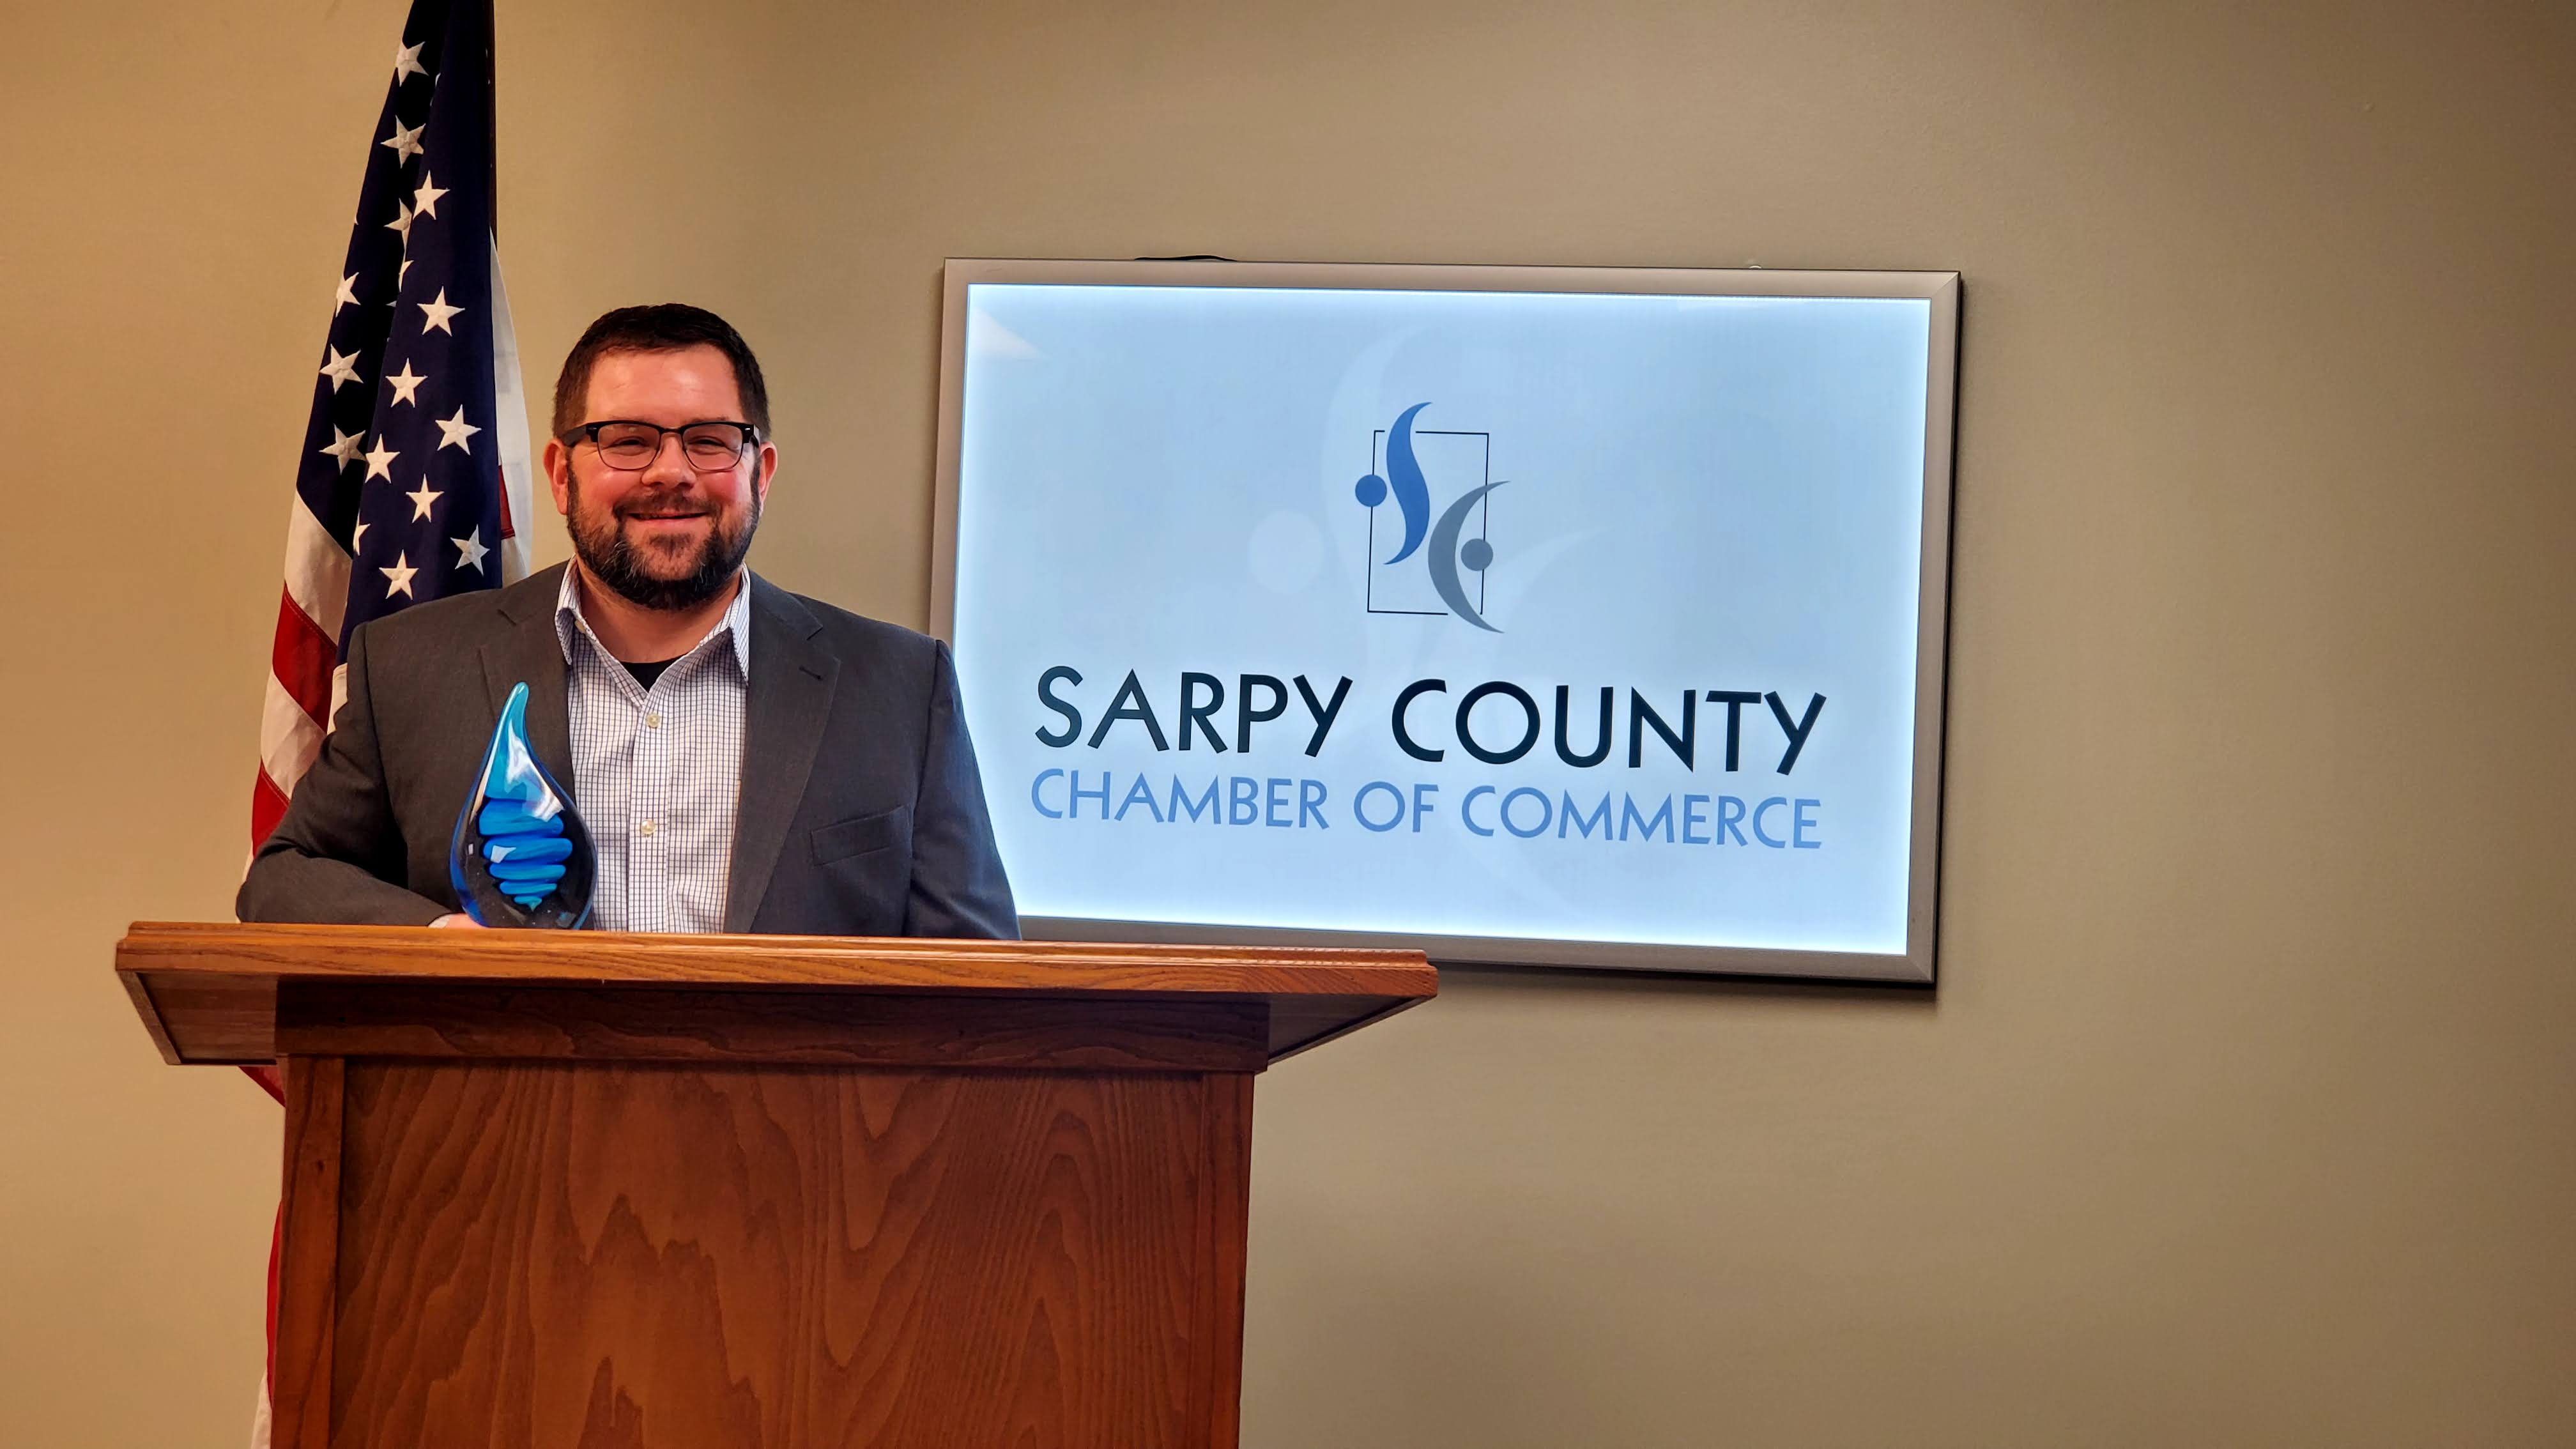 Ryan Ousey of ROC Business Technologies accepts the chamber's New or Emerging Business of the Year Award. (Sarpy County Chamber)